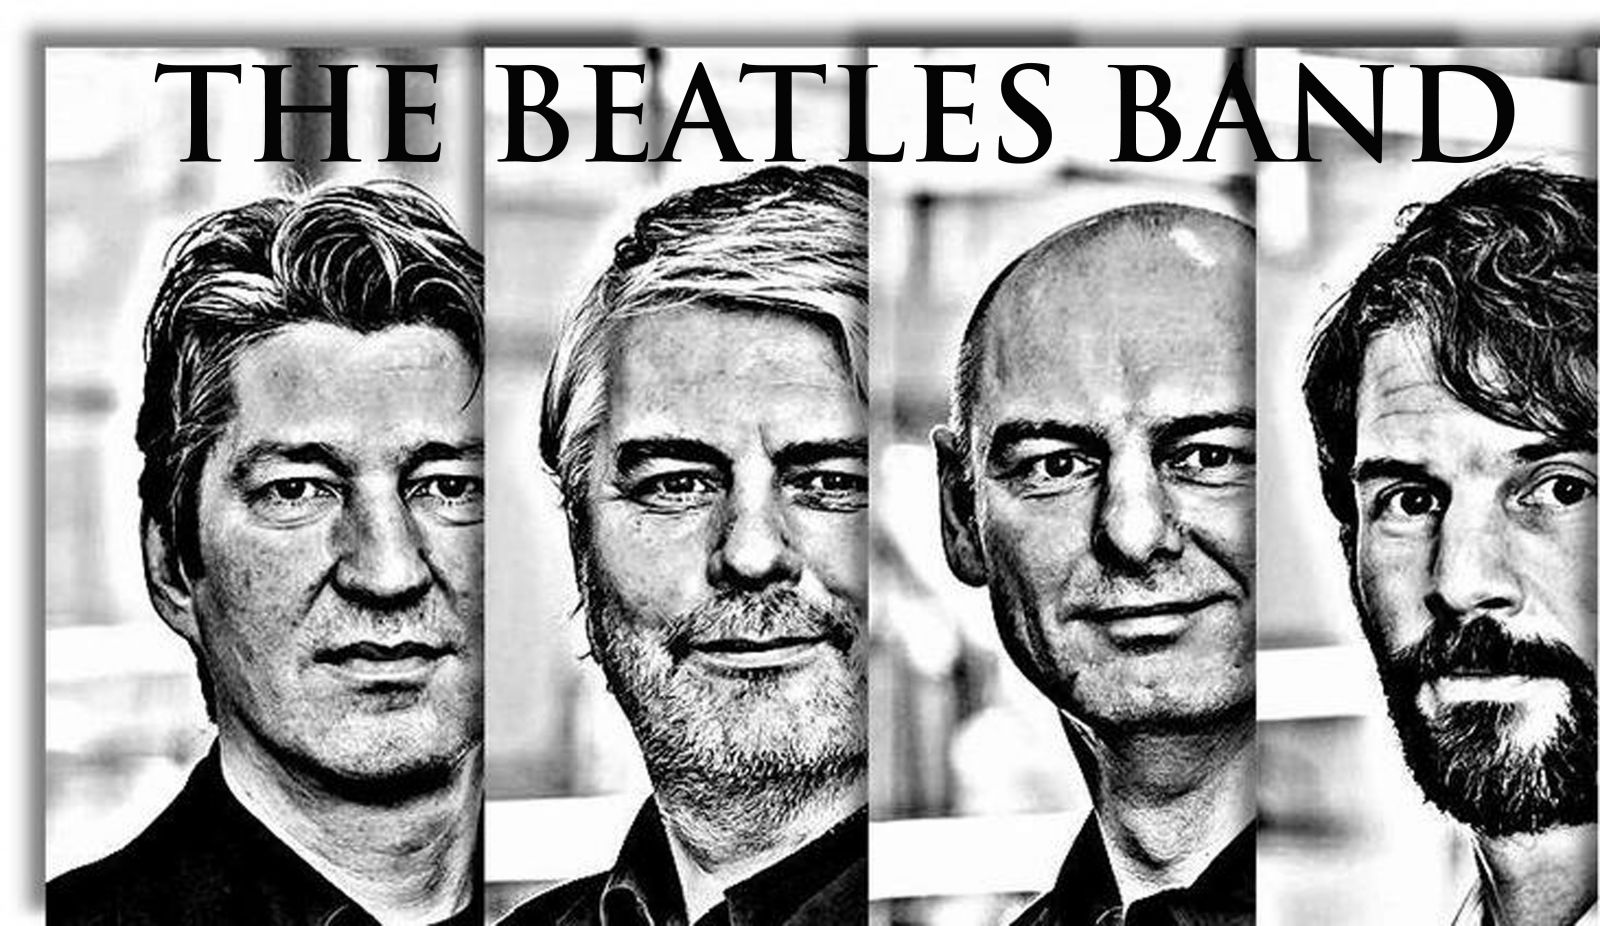 The Beatles Band Bandfoto